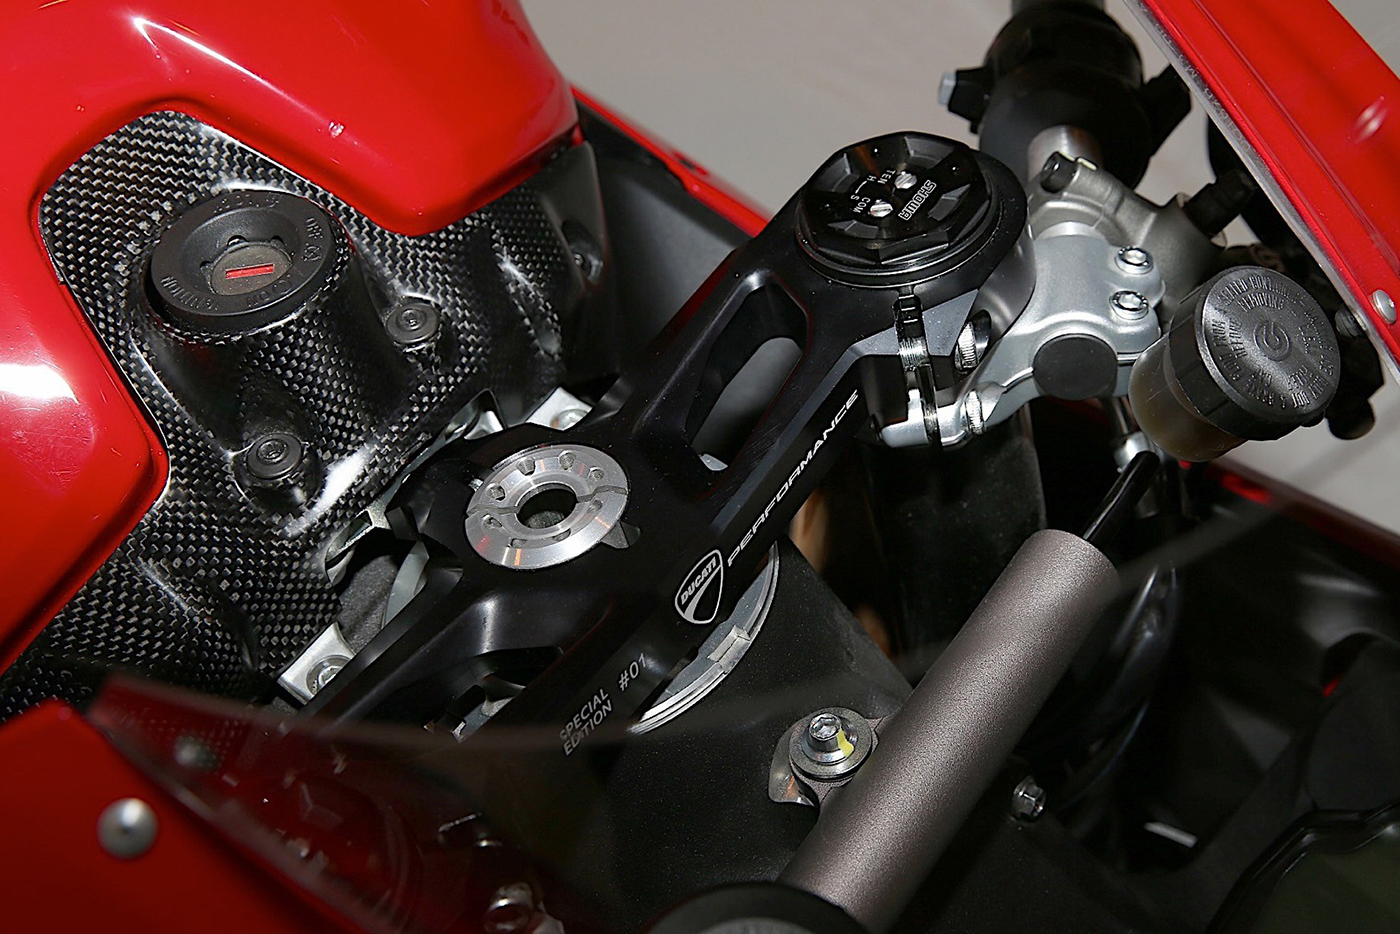 special-edition-ducati-959-panigale-announced-for-the-uk-2.jpg